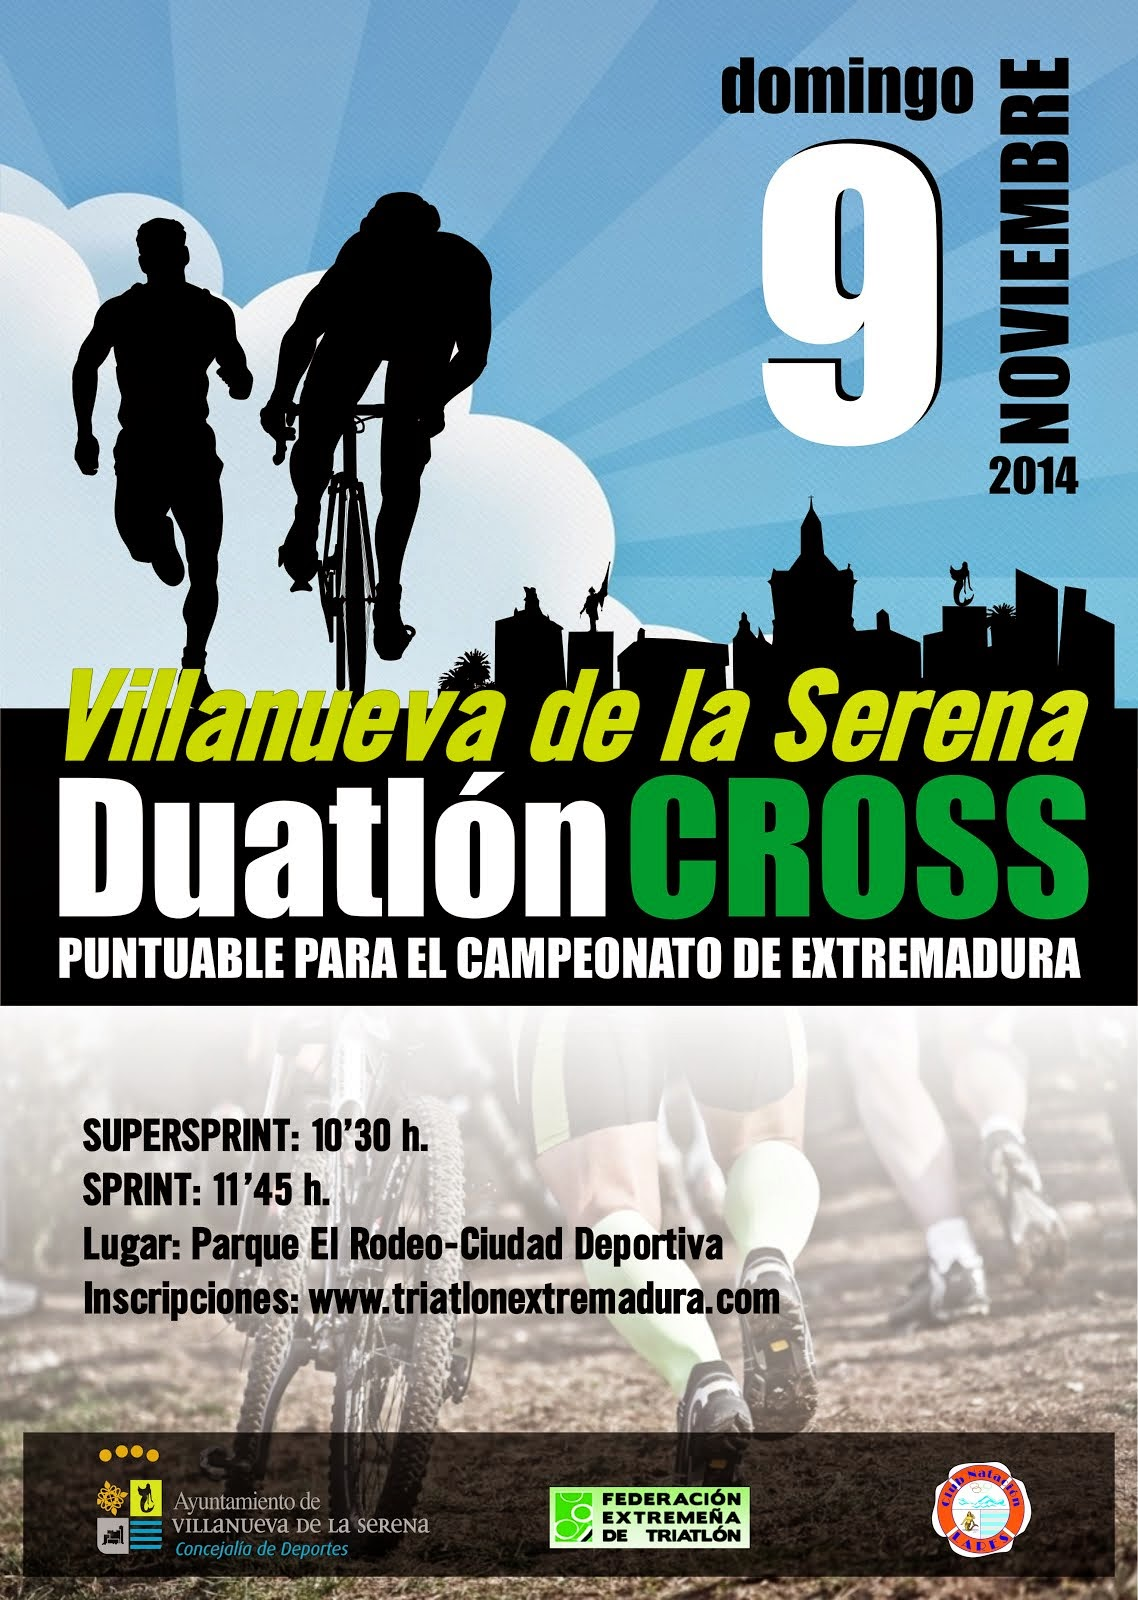 Duatlón CROSS